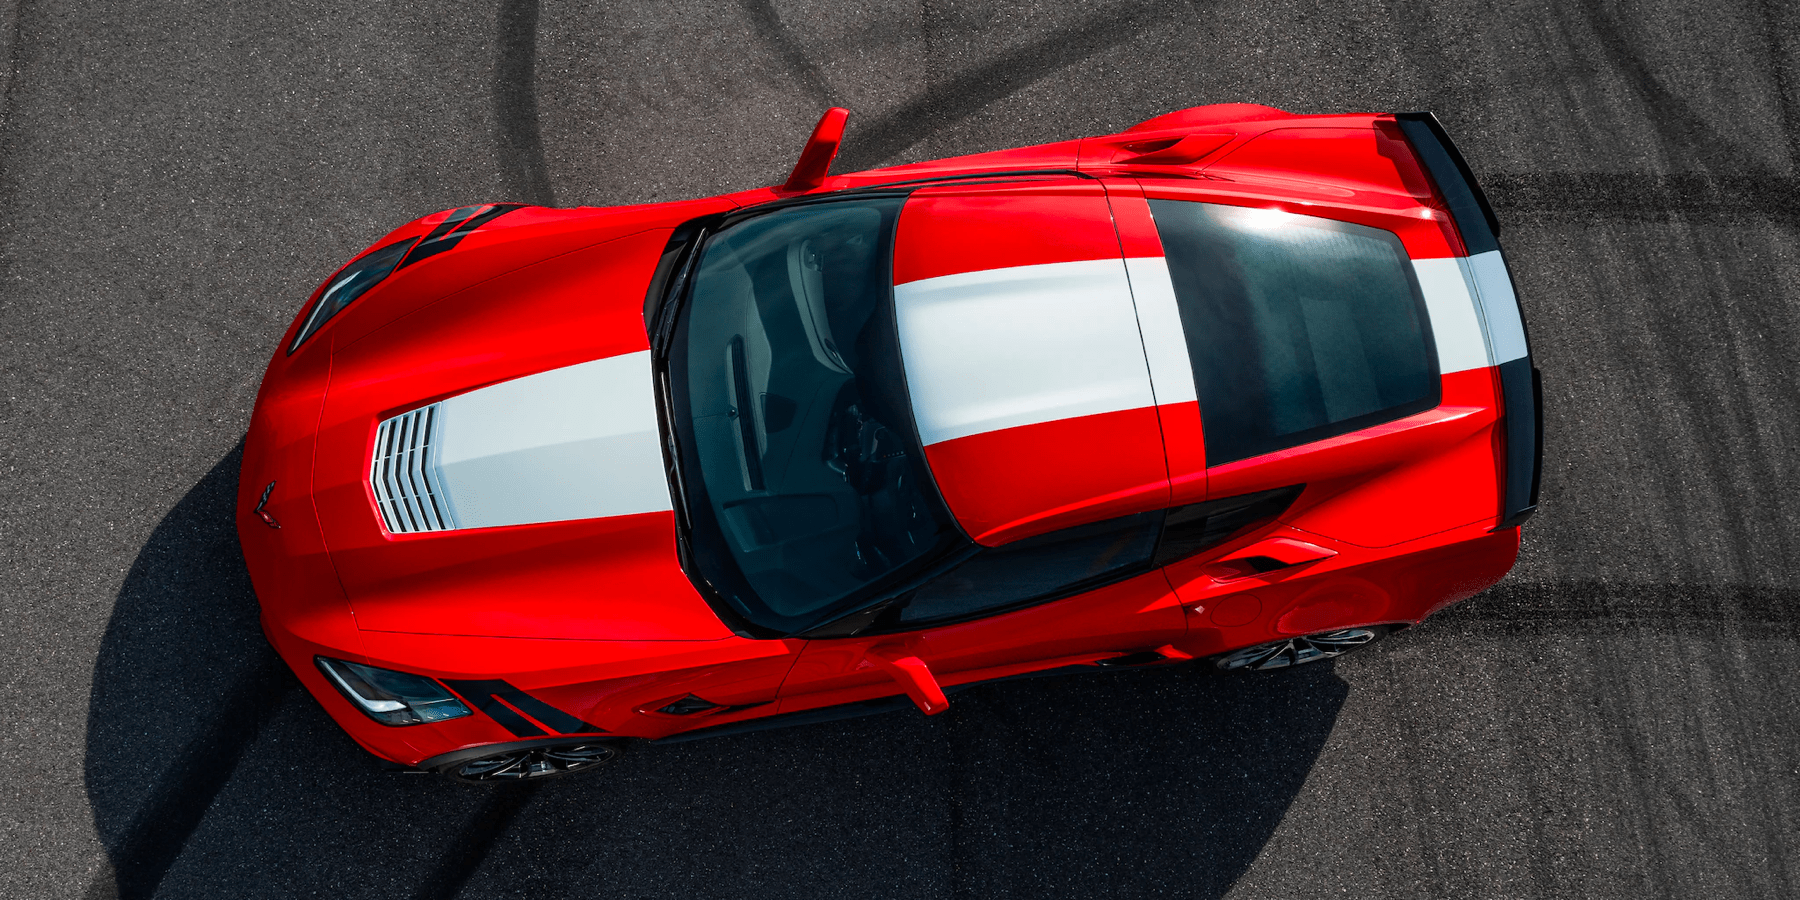 looking down at a parked red and white Corvette Z06